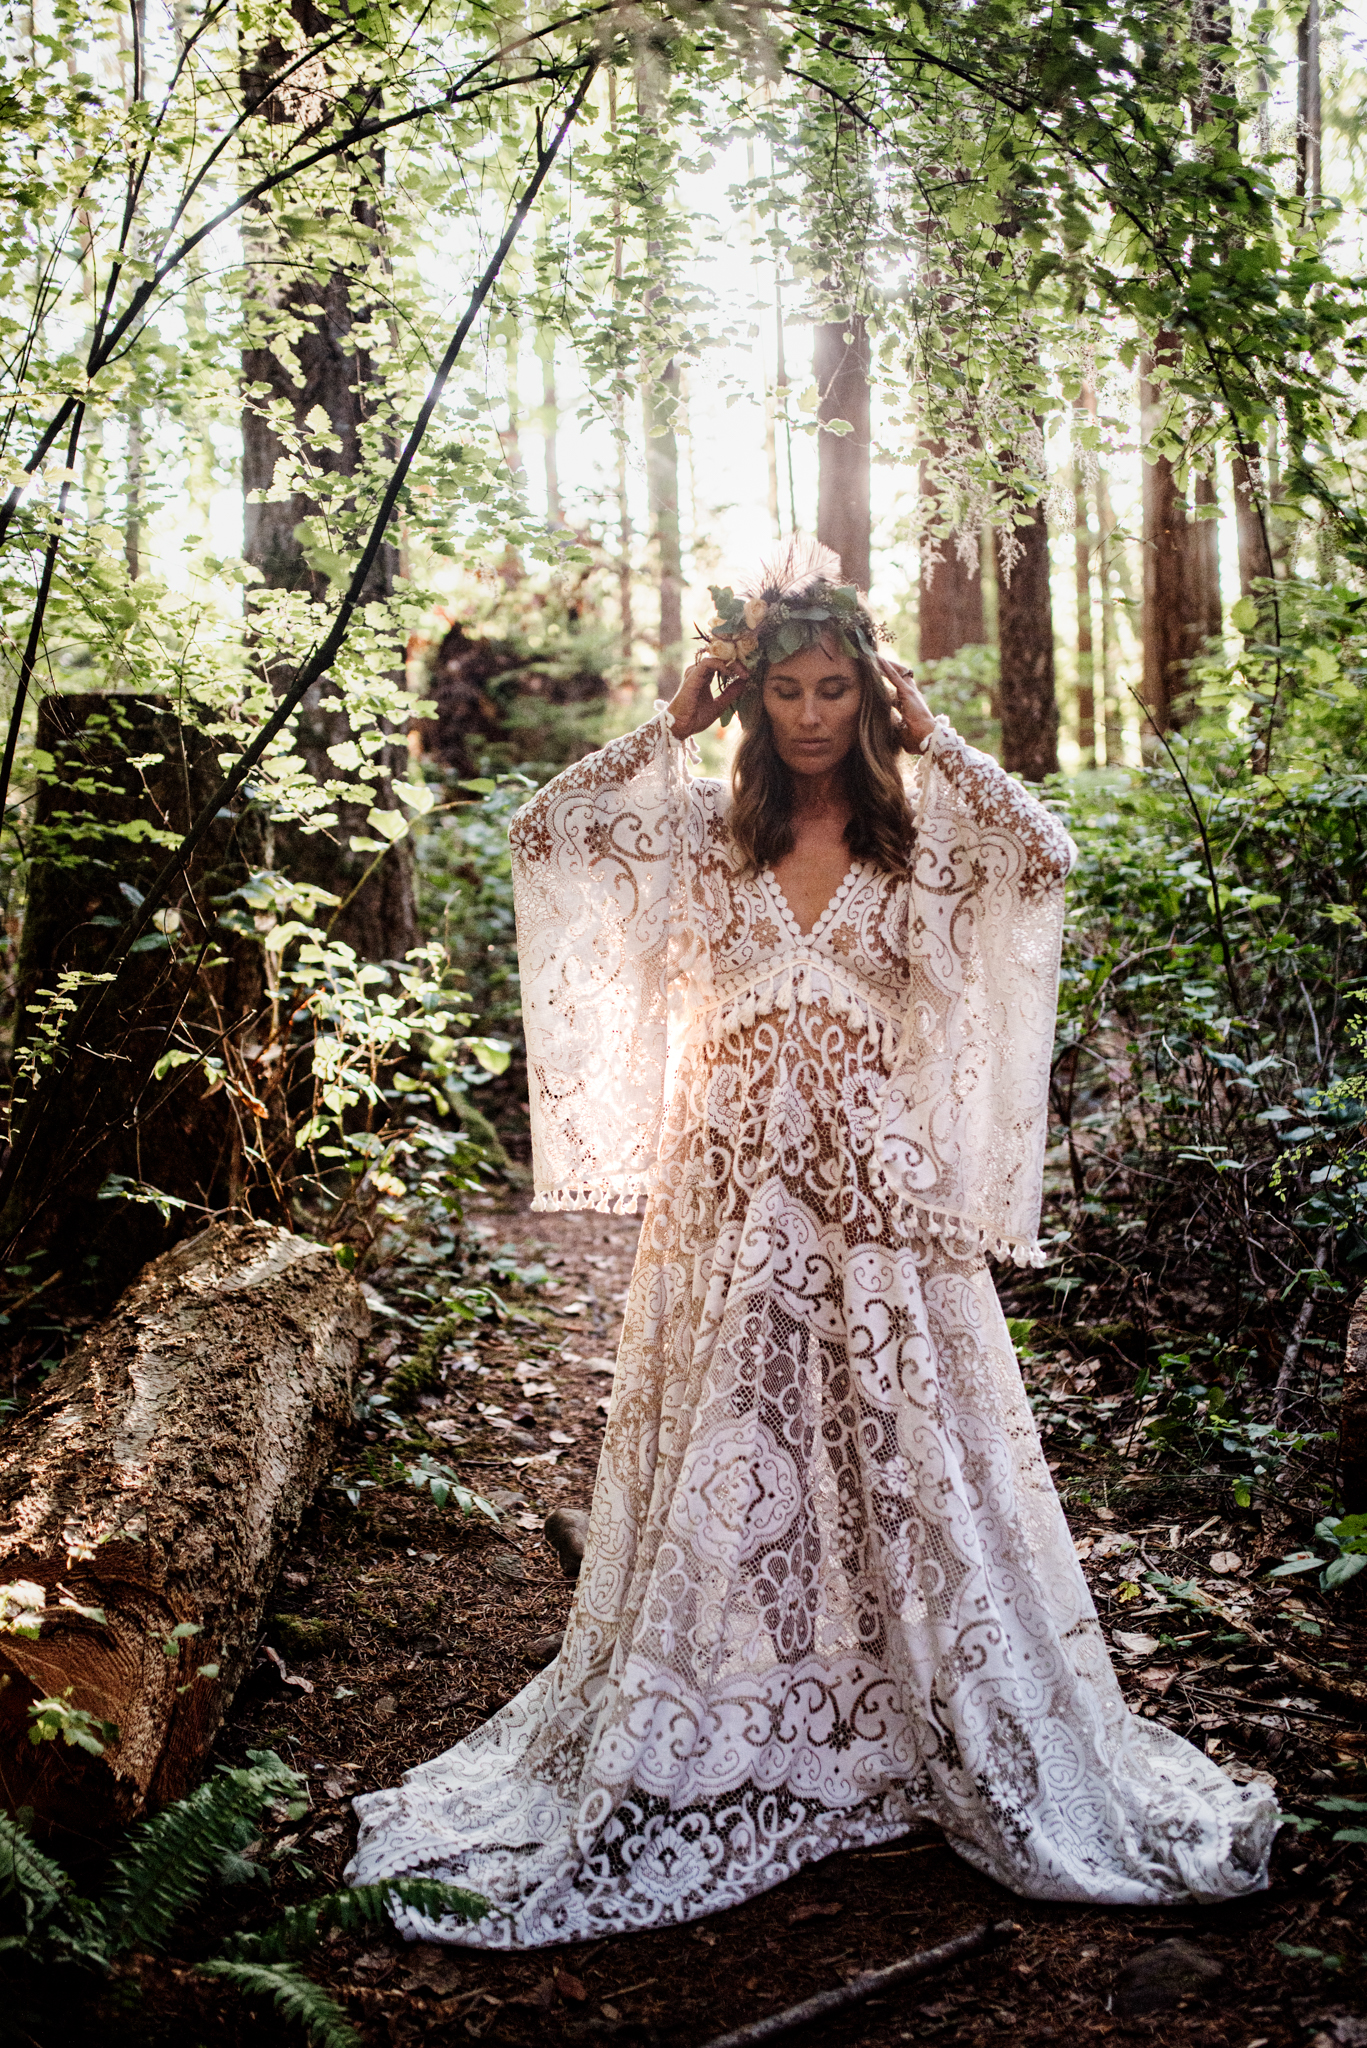 Woman in forest wearing flower crown and vintage lace reclamation design company gown for lifestyle photoshoot